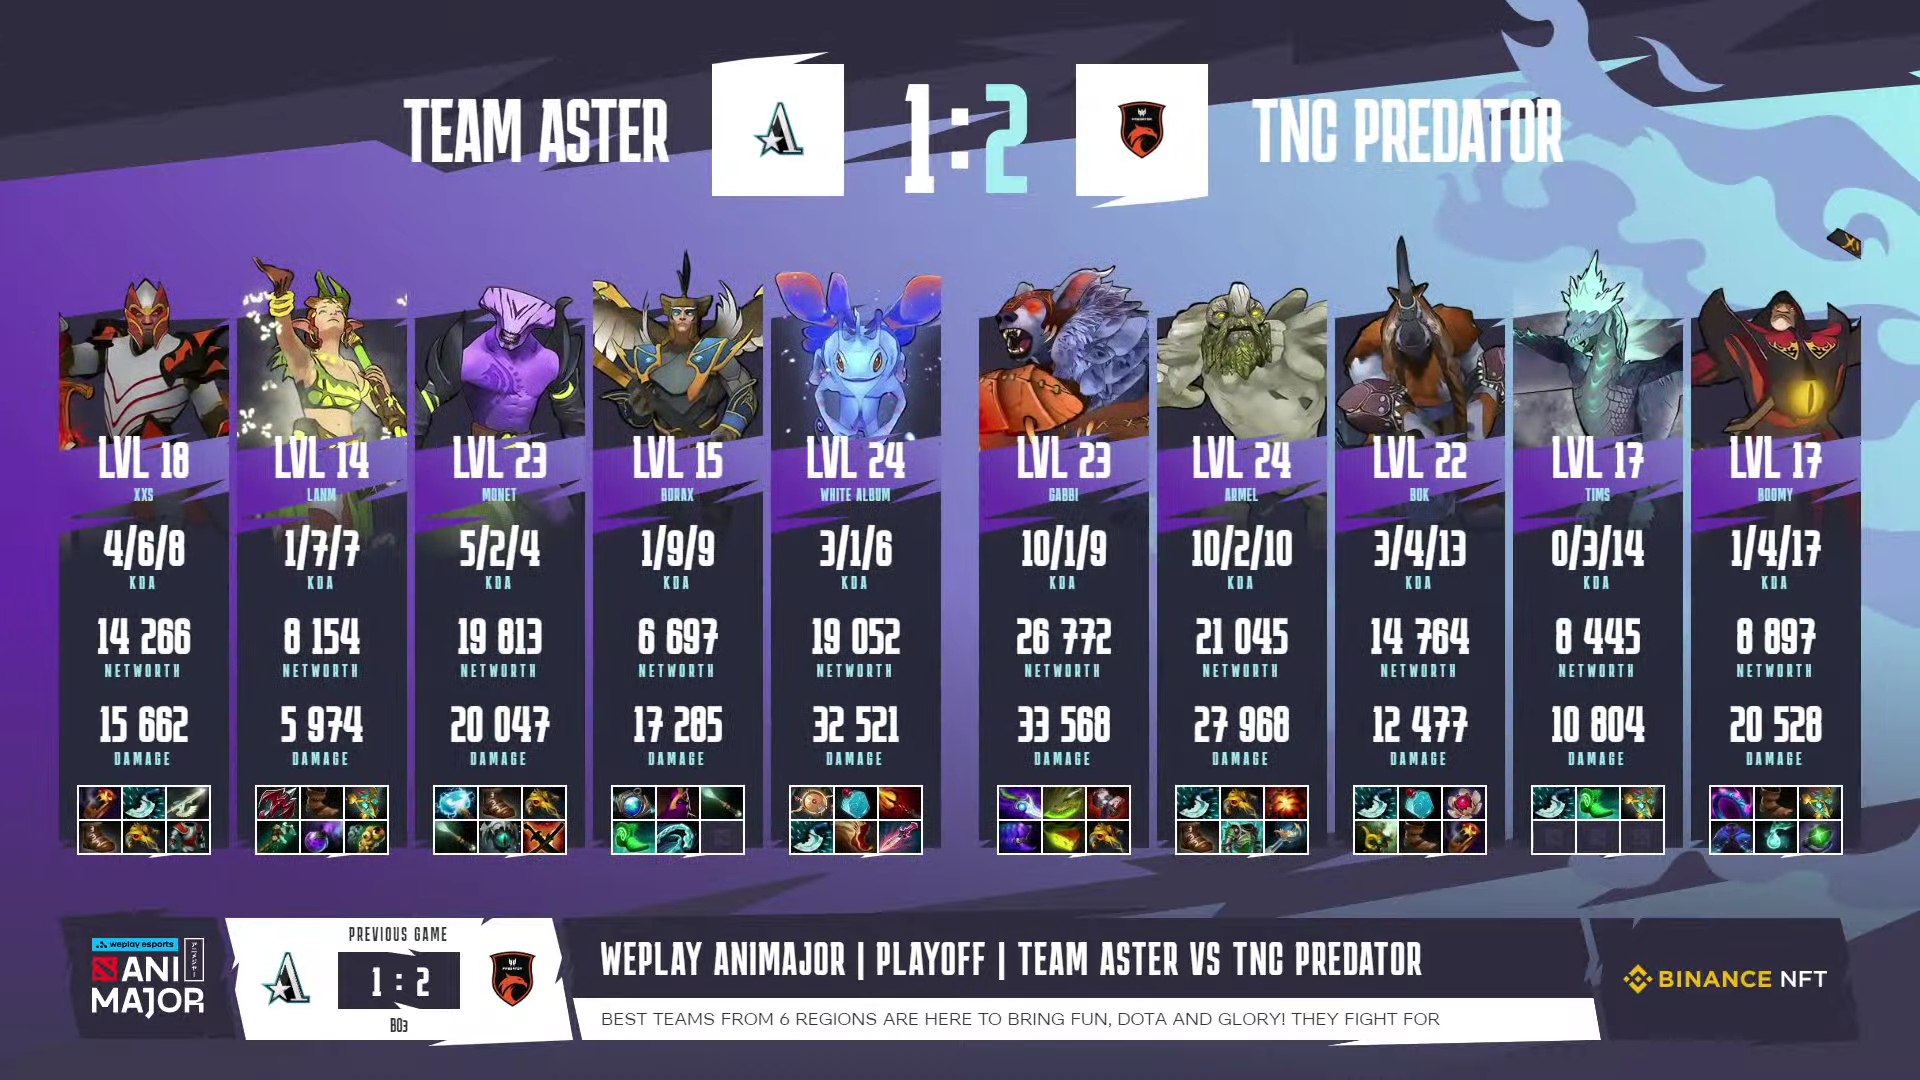 2021-WePlay-AniMajor-Lower-Bracket-TNC-def-Team-Aster-Game-3 TNC pulls off epic come-from-behind win to advance in AniMajor playoffs DOTA 2 ESports News  - philippine sports news